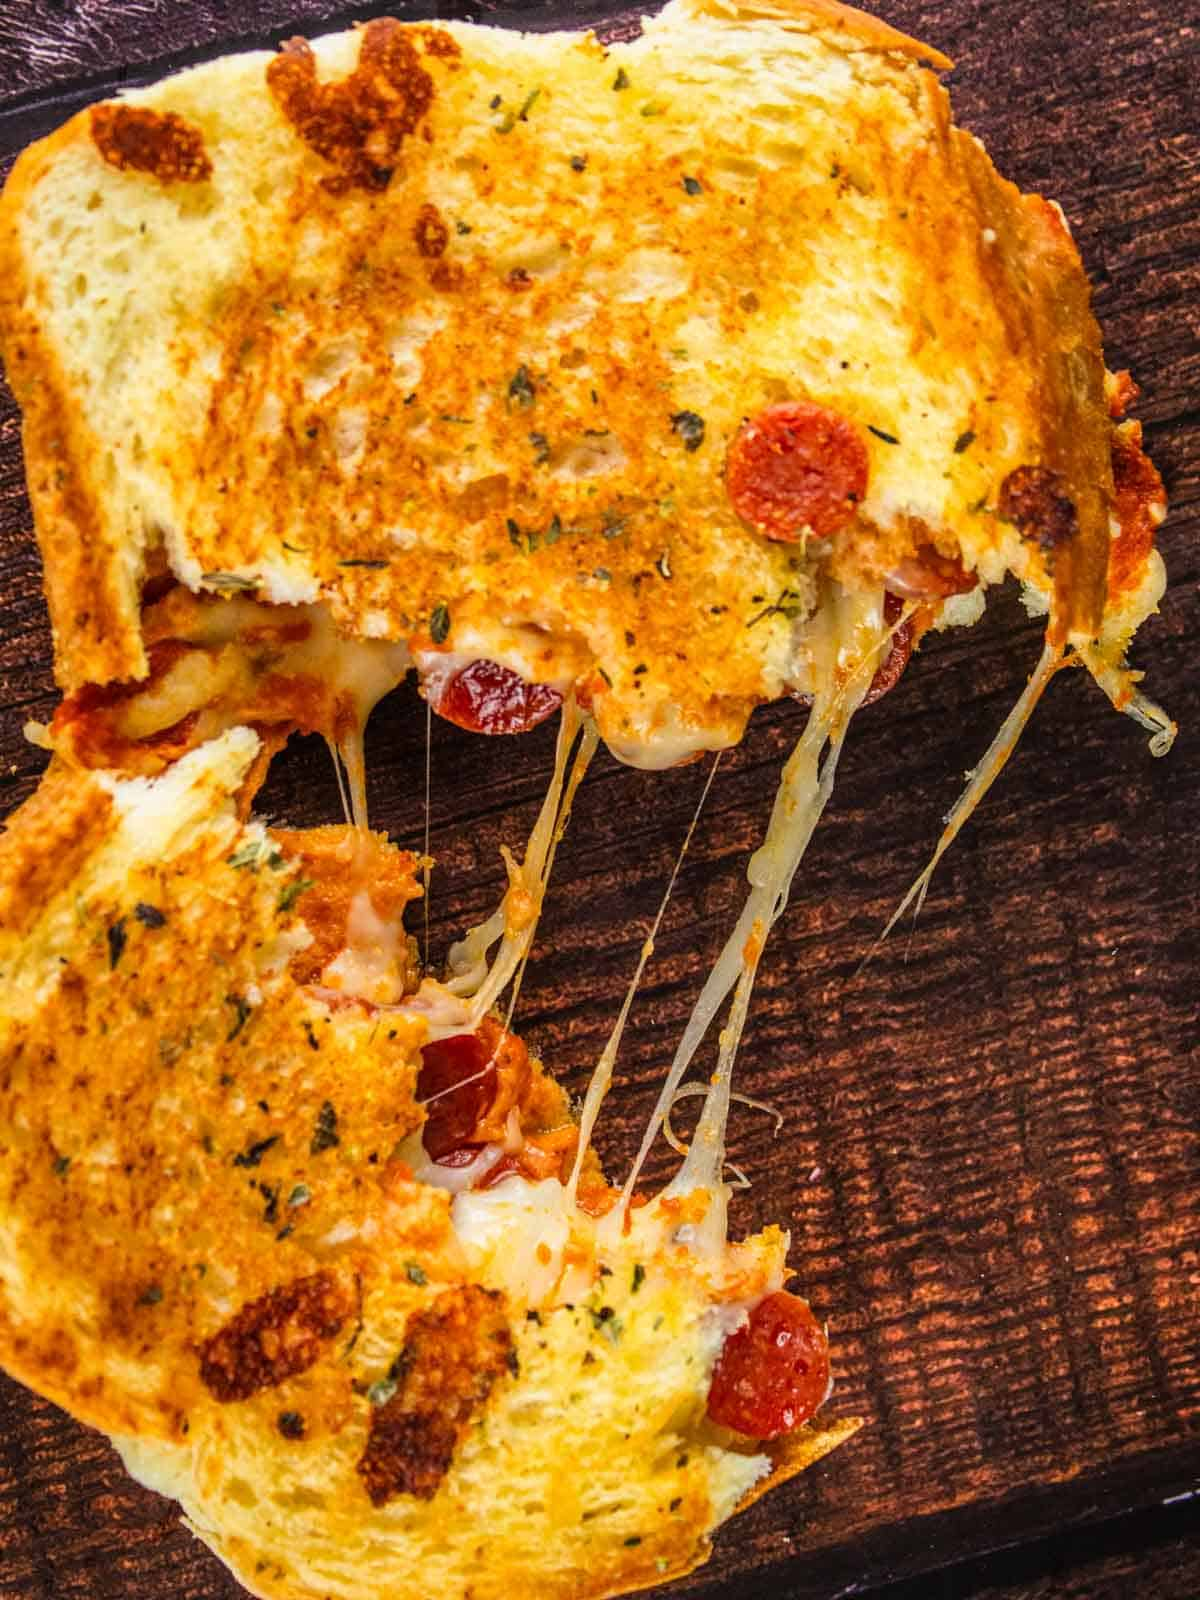 pizza grilled cheese pulled apart in a the middle with cheese stringing from it